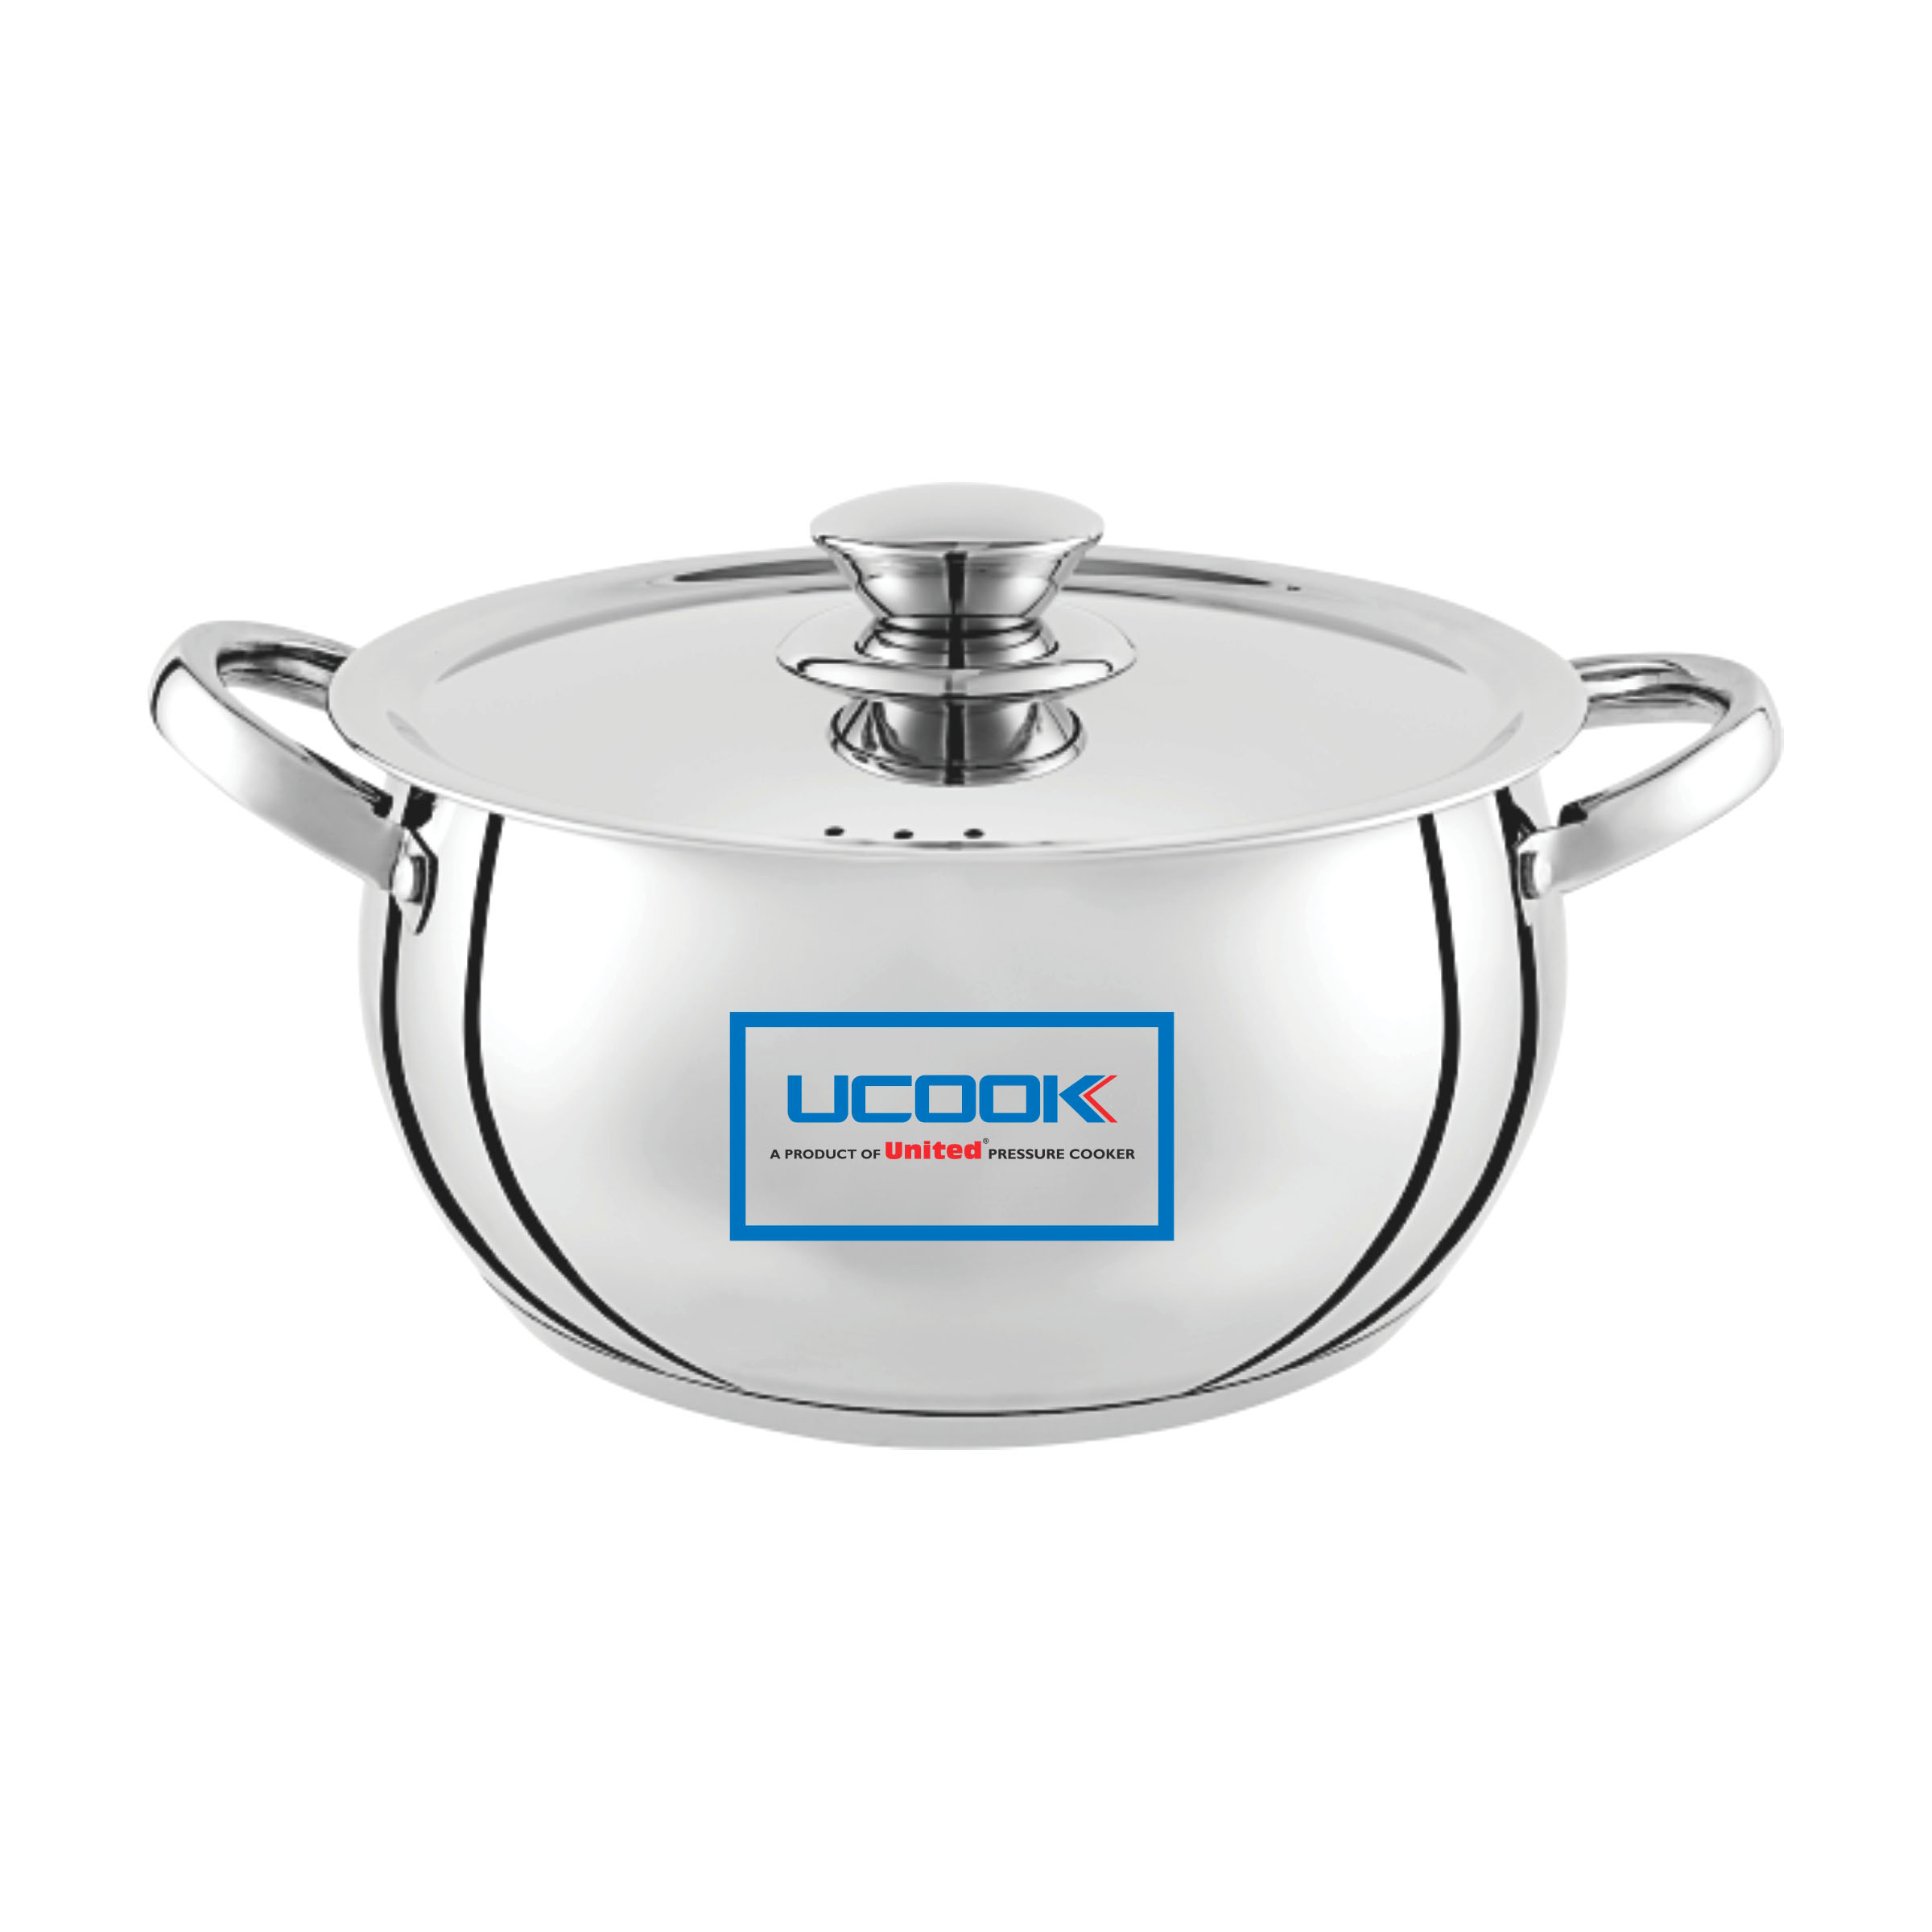 UCOOK SS LIFETIME COOK N SERVE Bulging 200 Induction with lid 1500